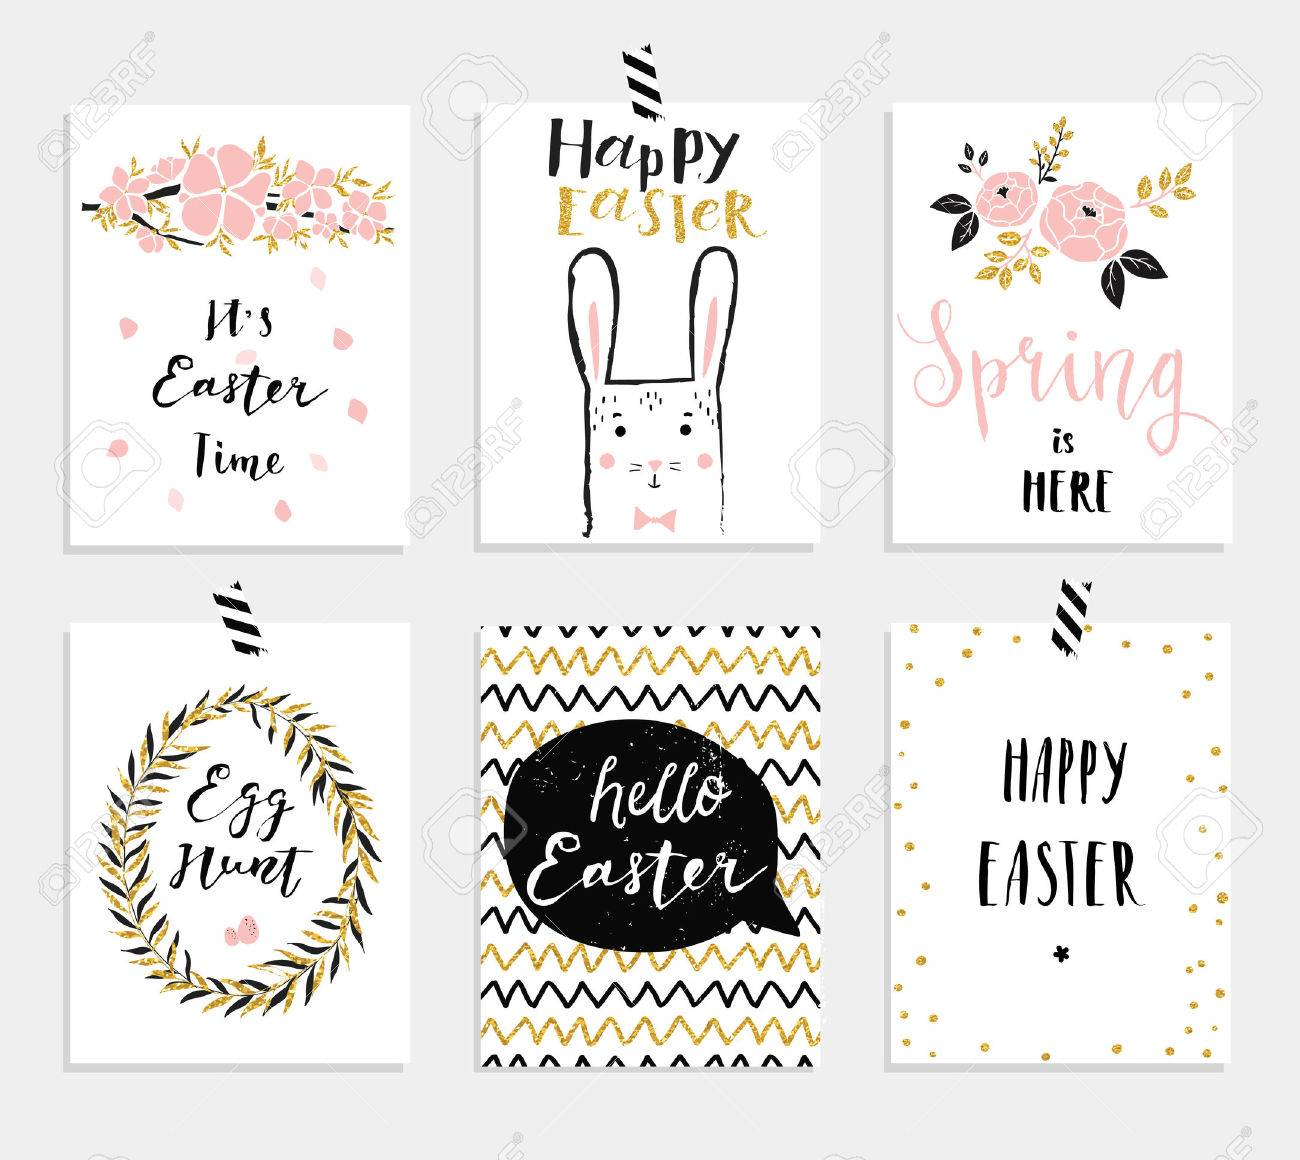 Easter gift voucher template gallery gift and gift ideas sample easter gift certificate template free image collections gift and printable easter gift certificates choice image gift yadclub Choice Image